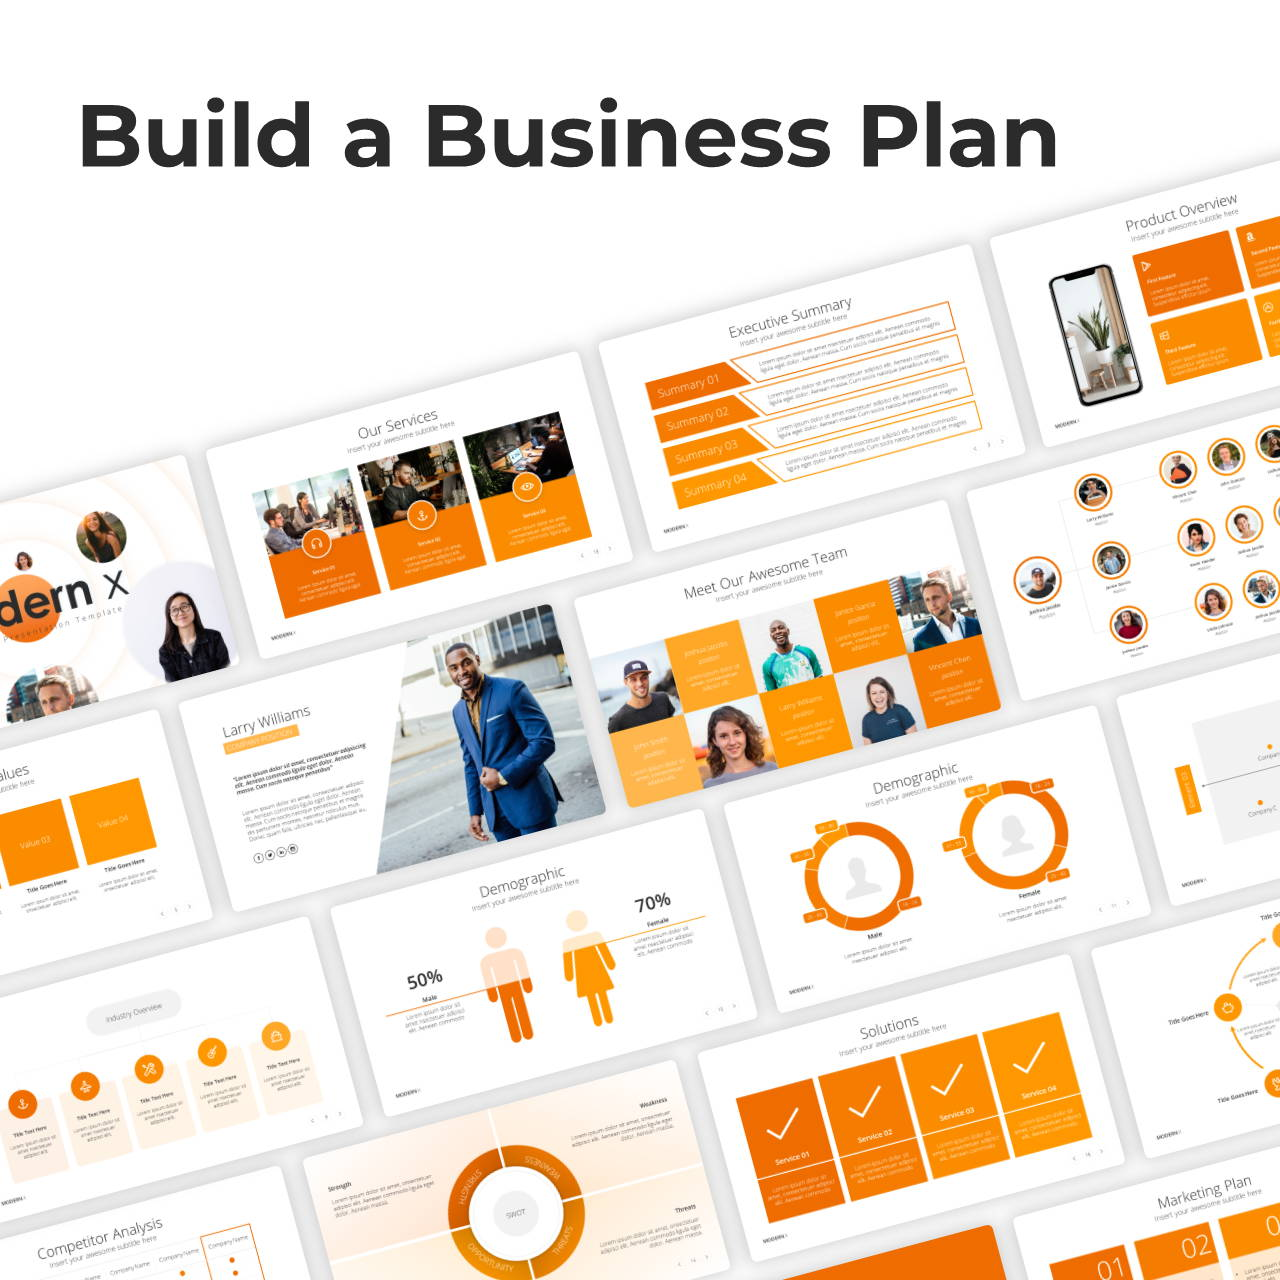 Modern X Presentation Template Business Plan